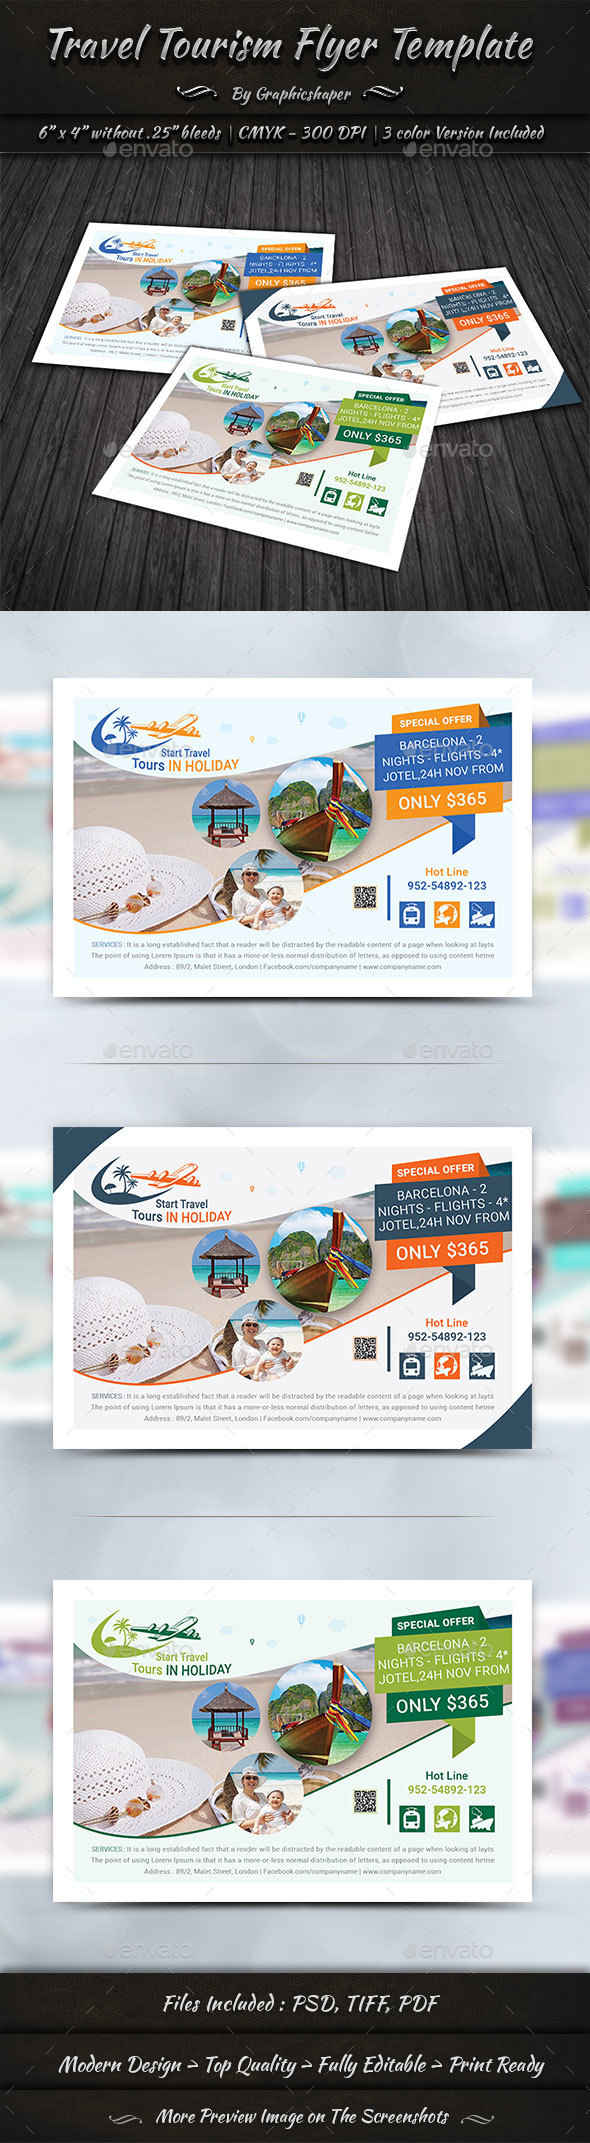 6x4 Travel Tourism Flyer Template - Holidays Events